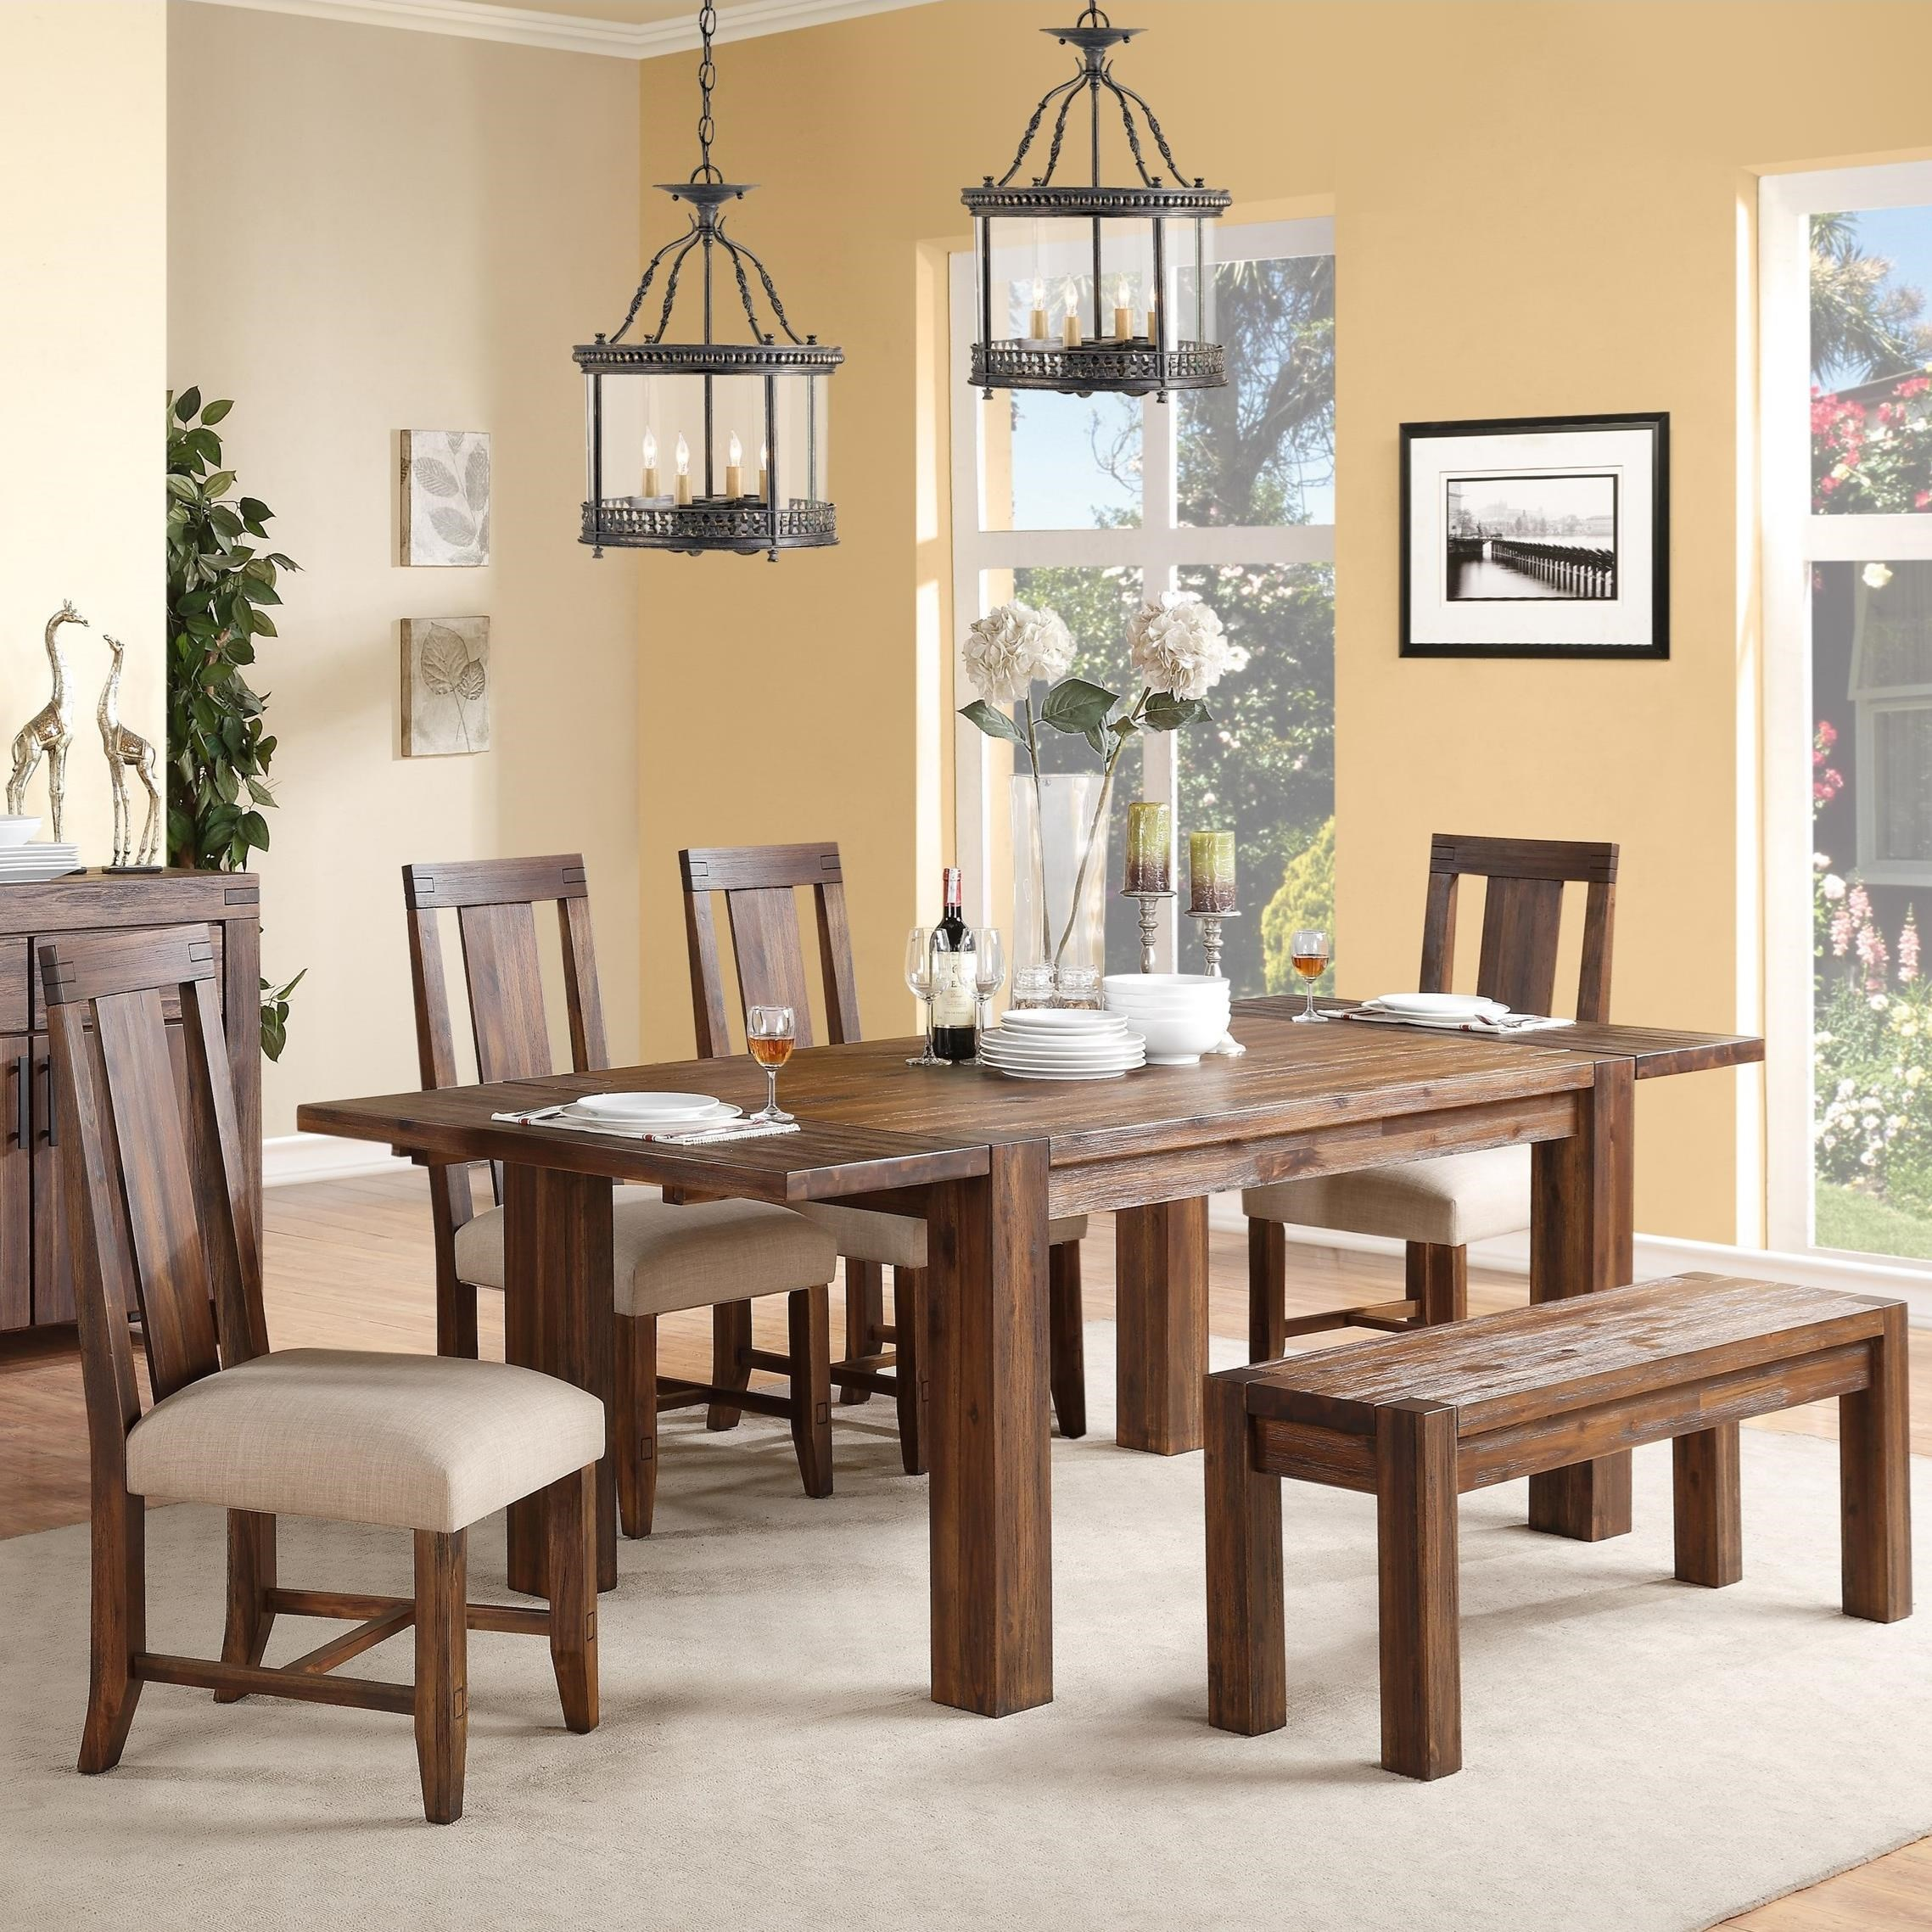 Modus International Meadow 6 Piece Dining Package - Item Number: 3F4161+3F4191+4x3F4166P